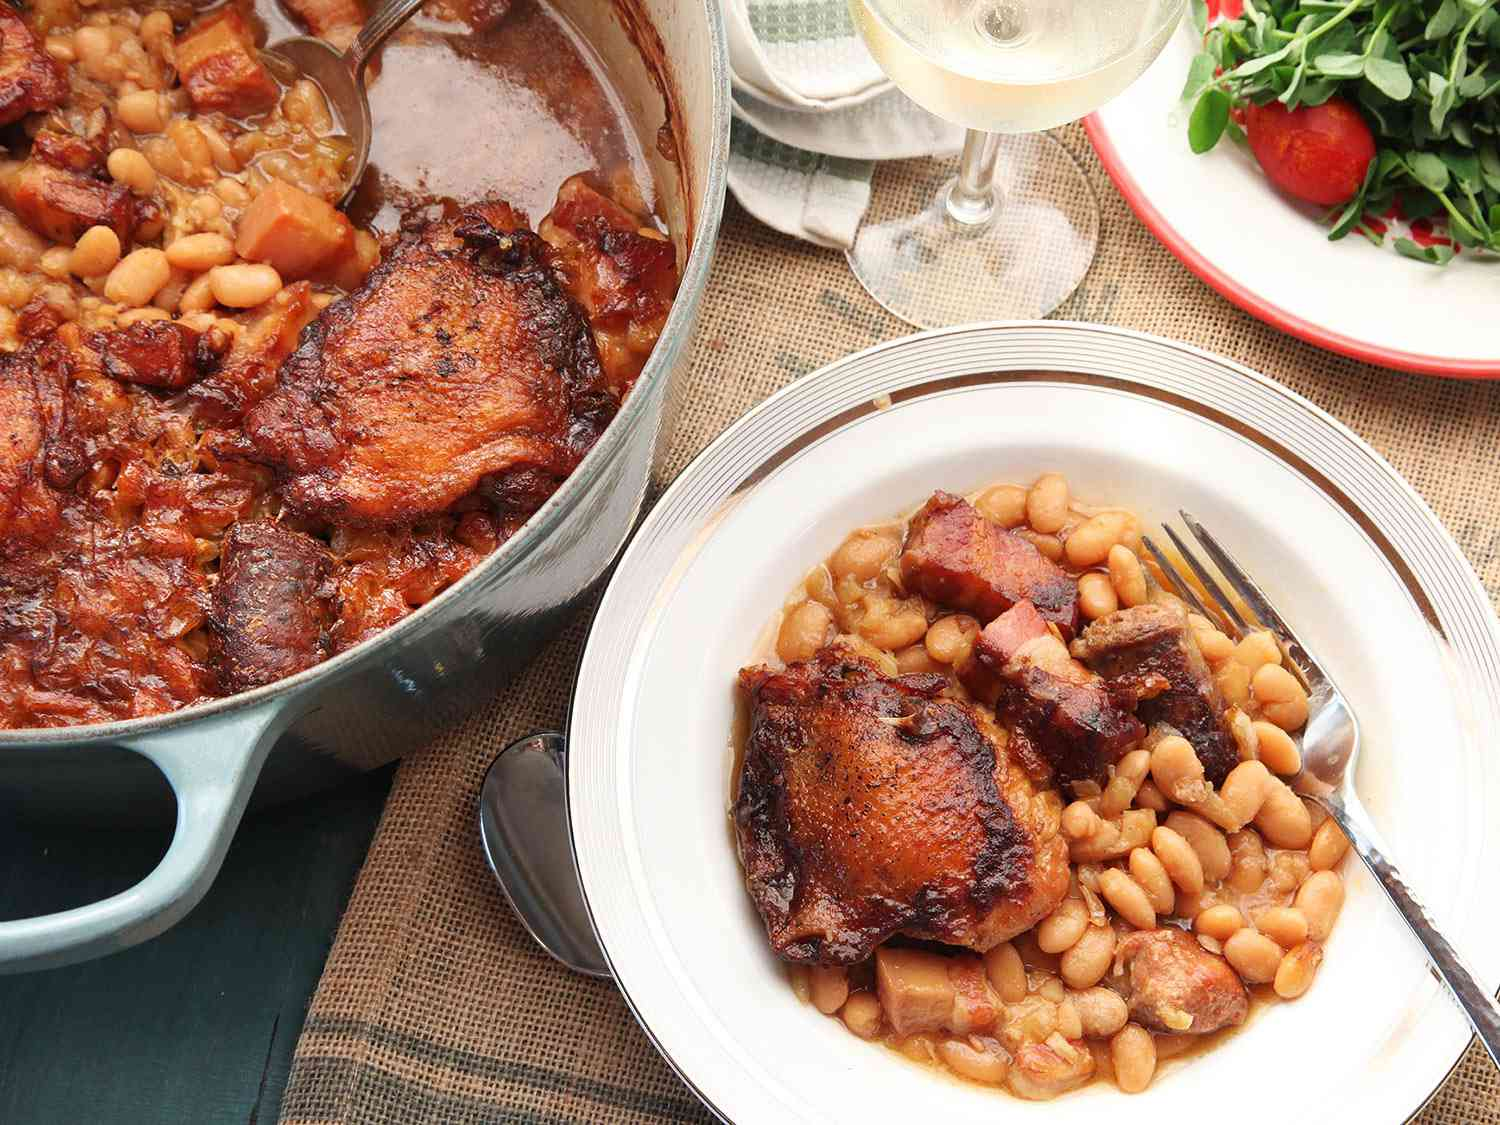 20171016-french-recipes-roundup-01.jpg